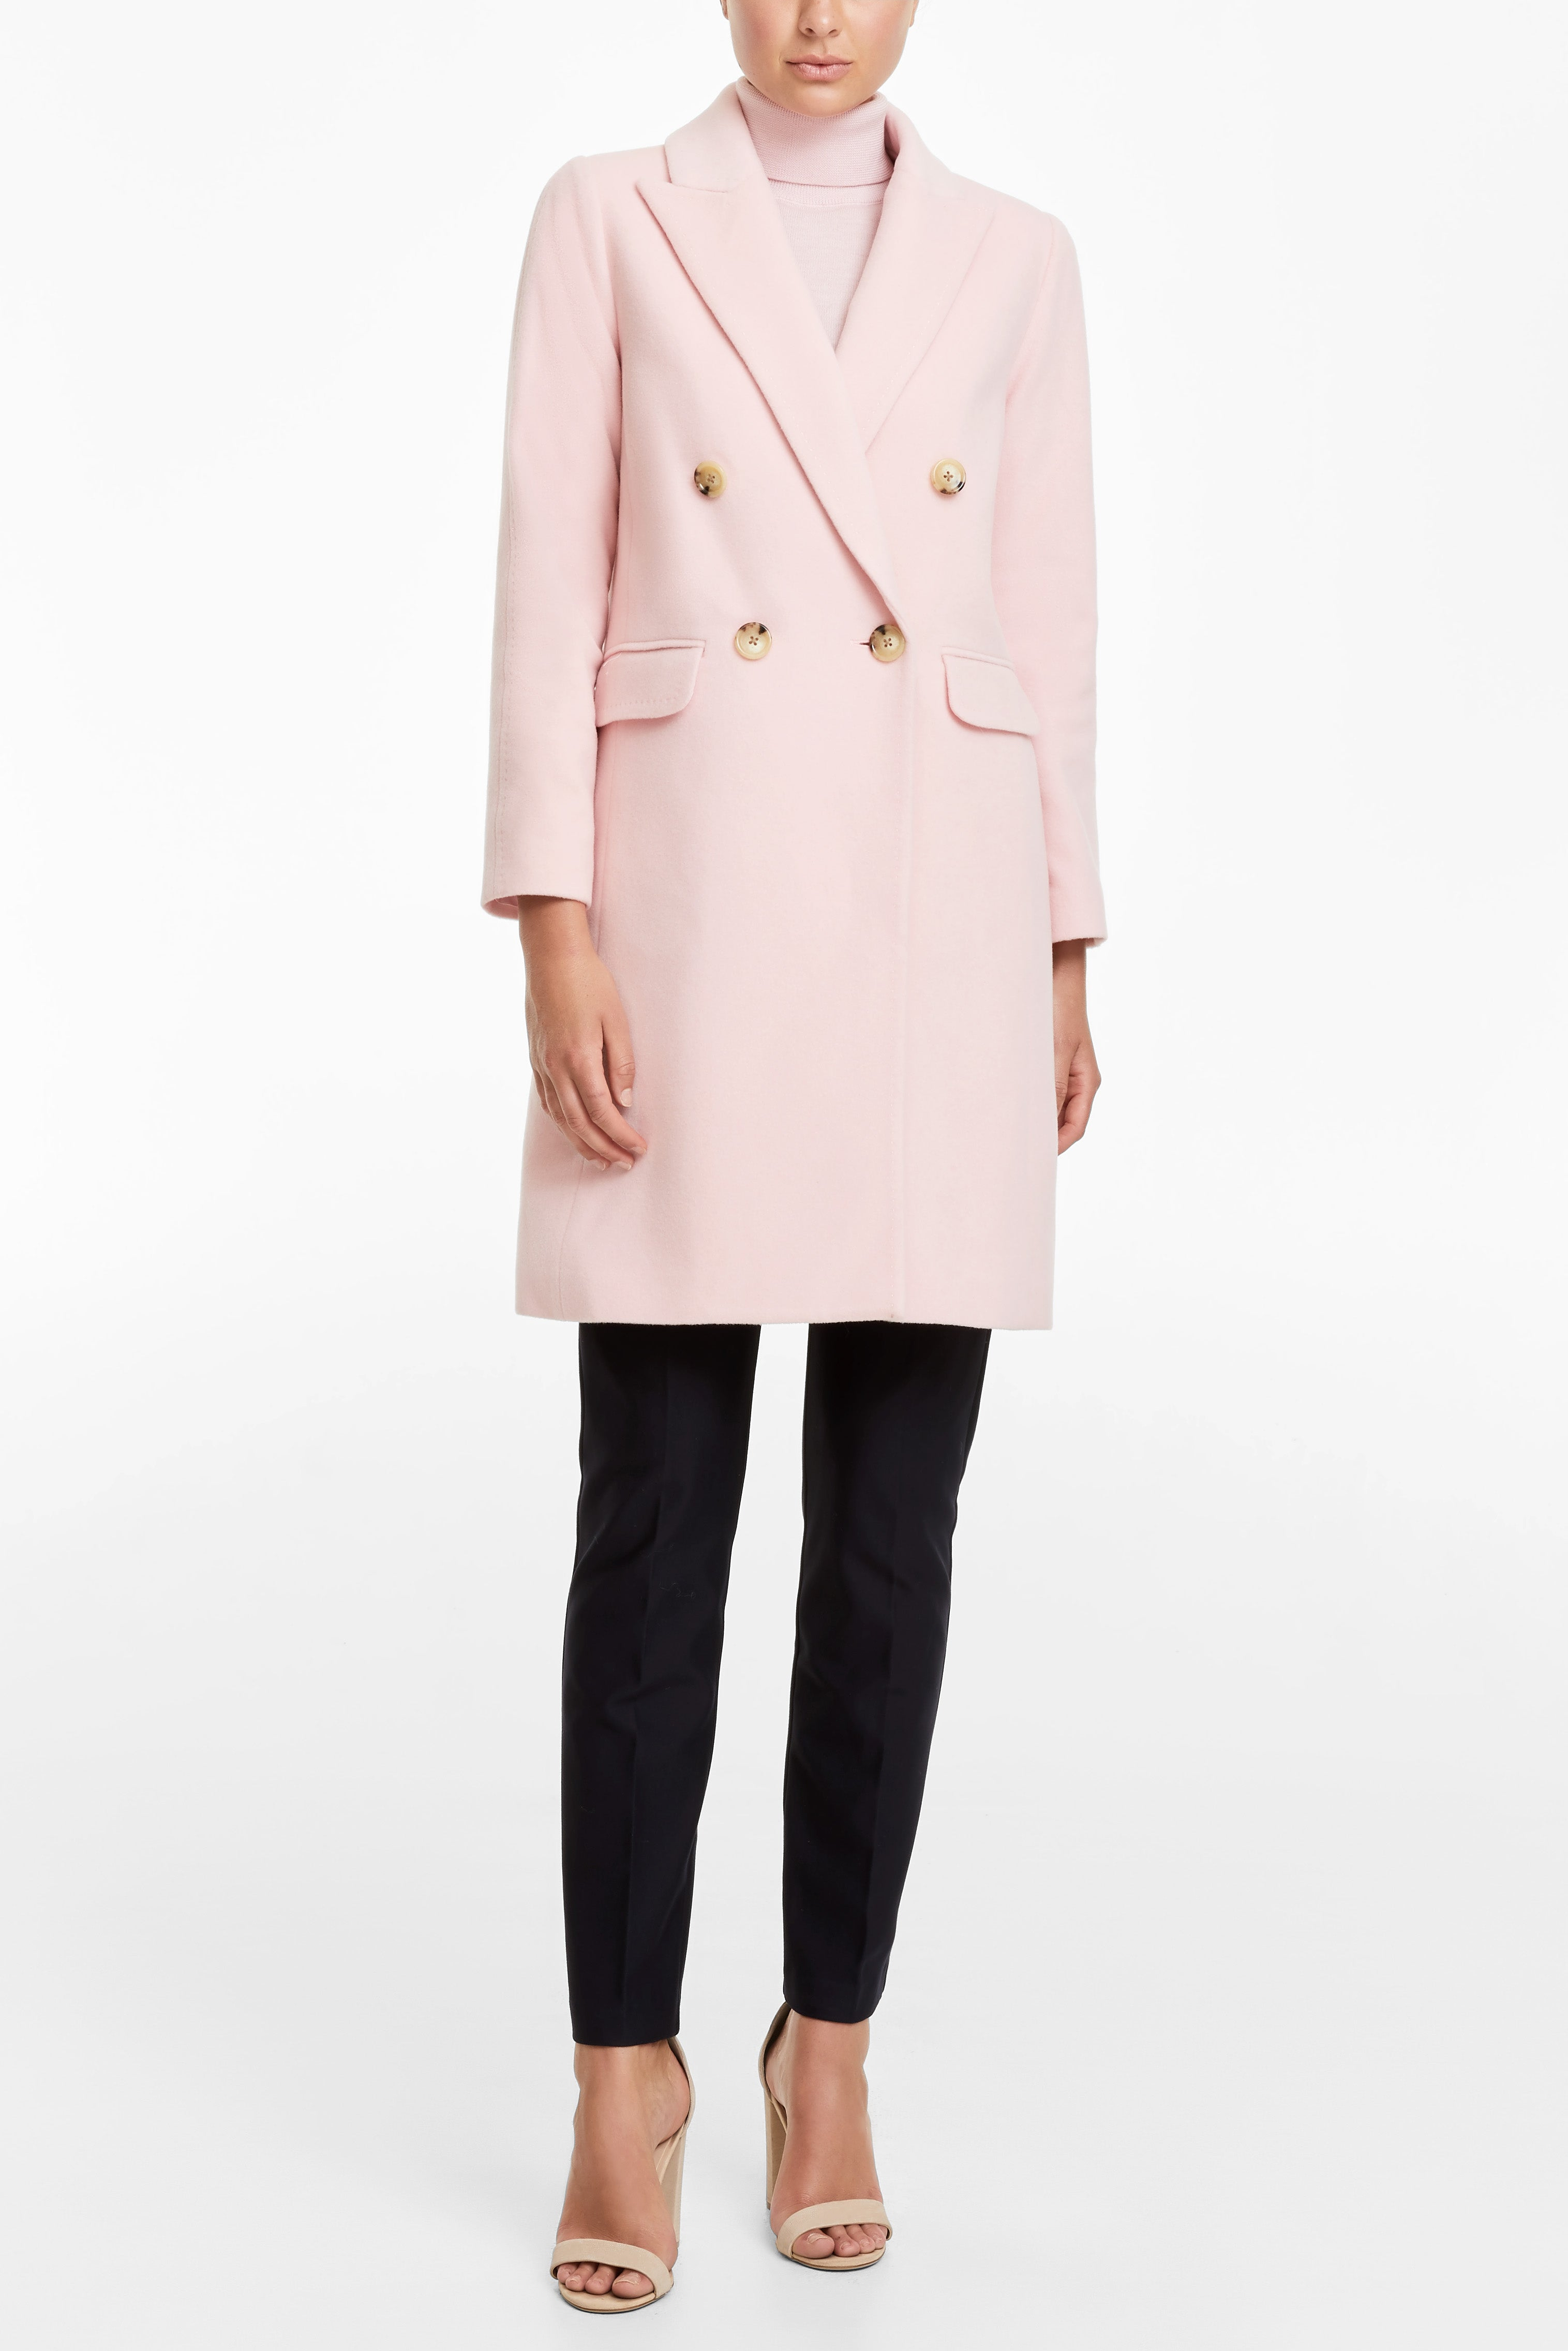 Severine Coat - Pink